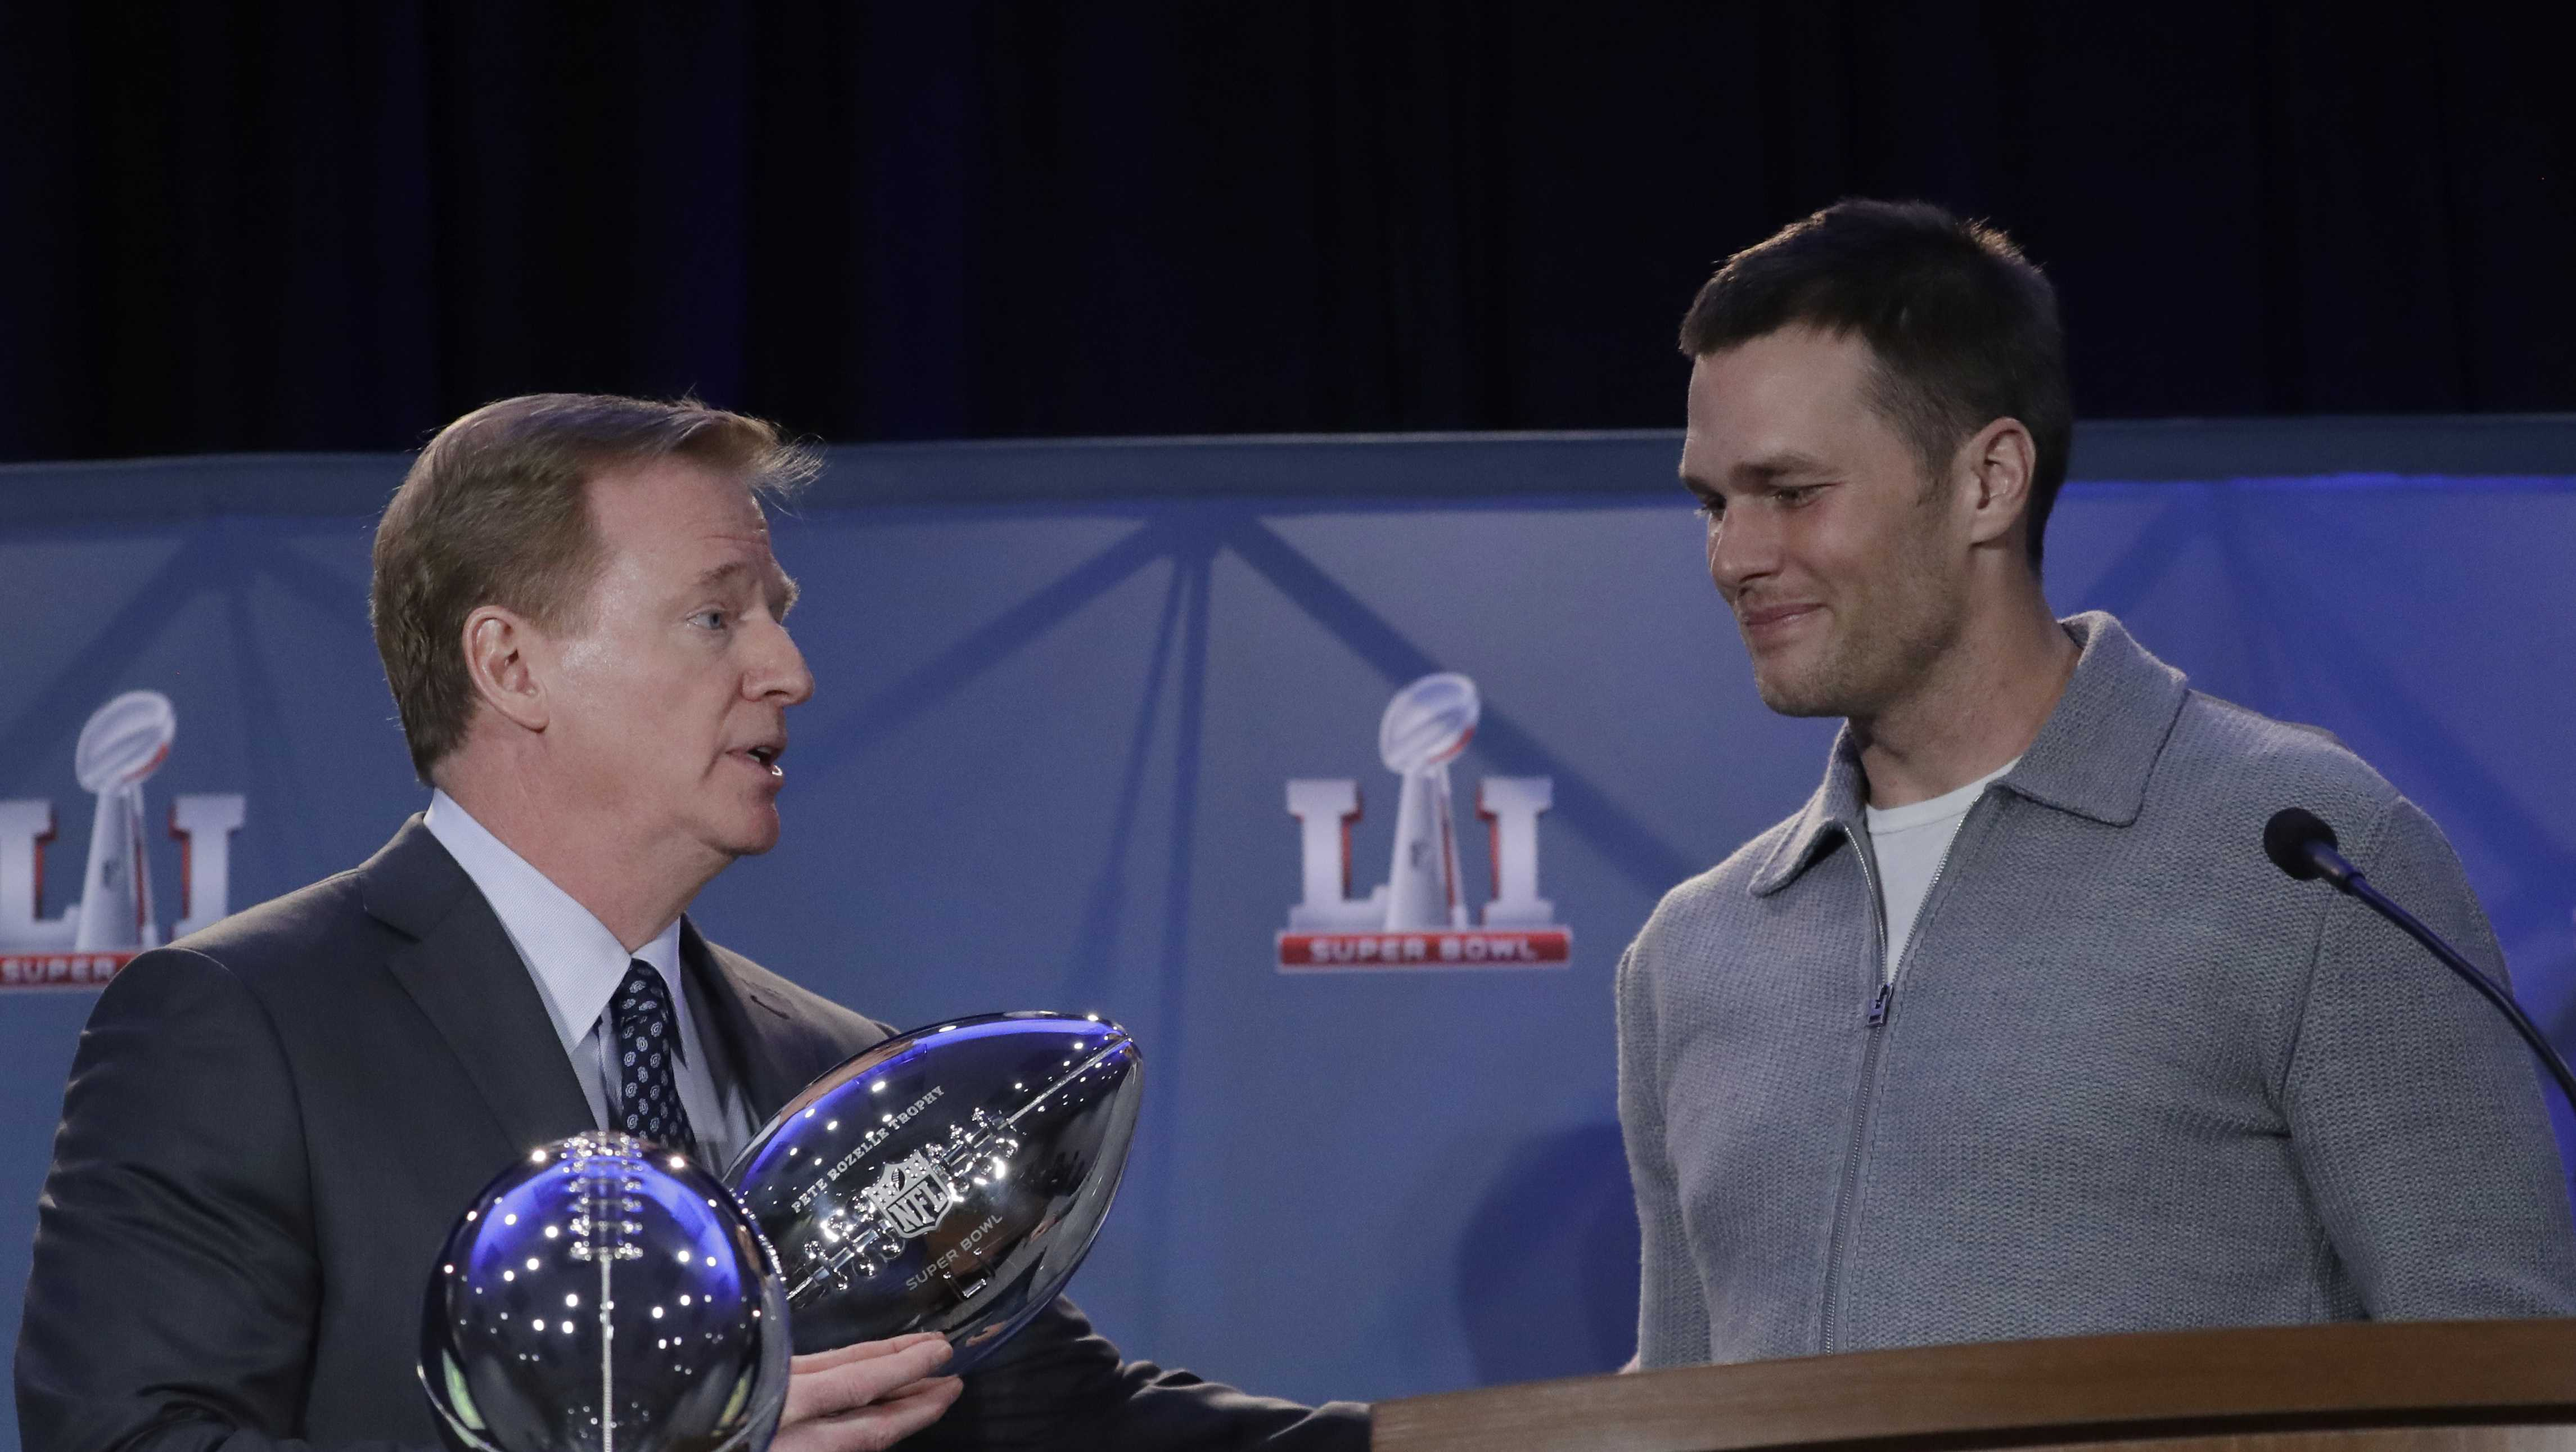 NFL commissioner Roger Goodell hand New England Patriots quarterback Tom Brady the MVP trophy during a news conference after the NFL Super Bowl 51 football game Monday, Feb. 6, 2017, in Houston. Brady was named the MVP of Super Bowl 51.